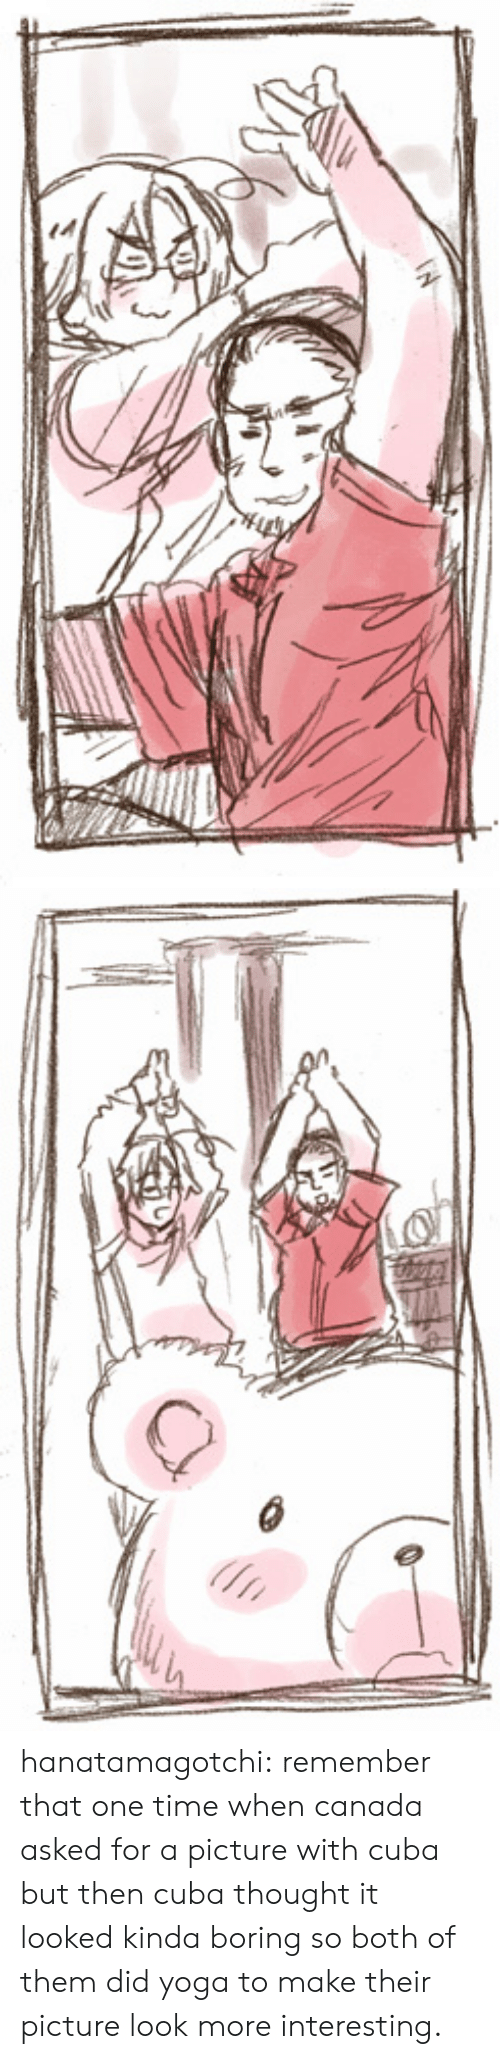 Target, Tumblr, and Blog: hanatamagotchi:  remember that one time when canada asked for a picture with cuba but then cuba thought it looked kinda boring so both of them did yoga to make their picture look more interesting.